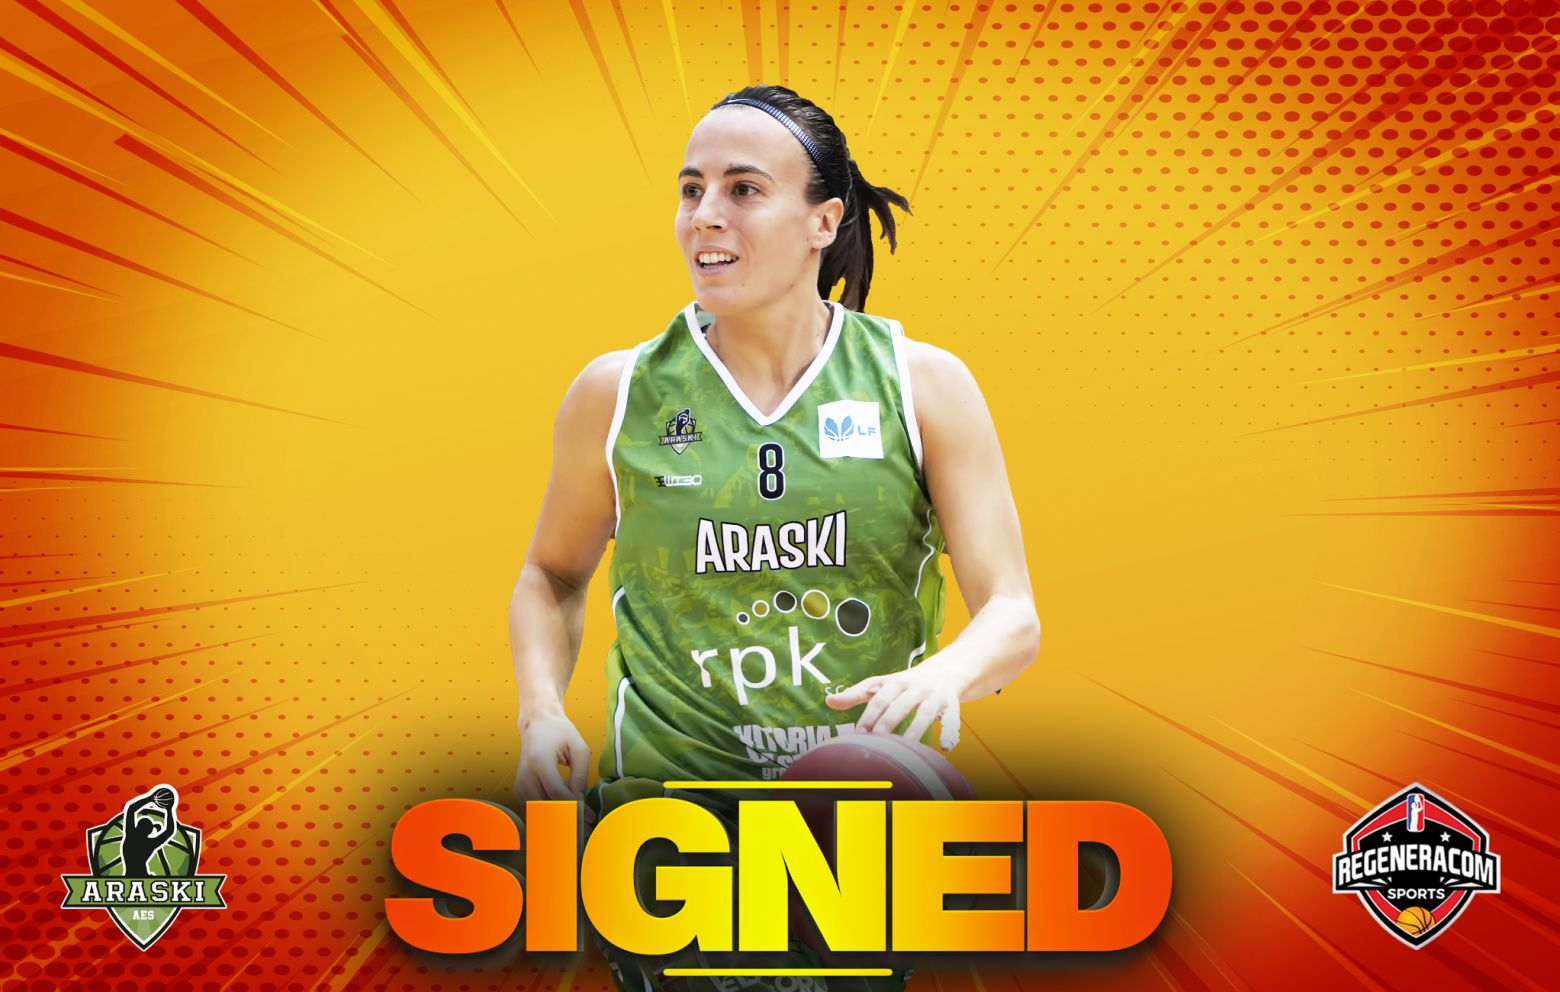 MARÍA ASURMENDI has signed in Spain with Araski